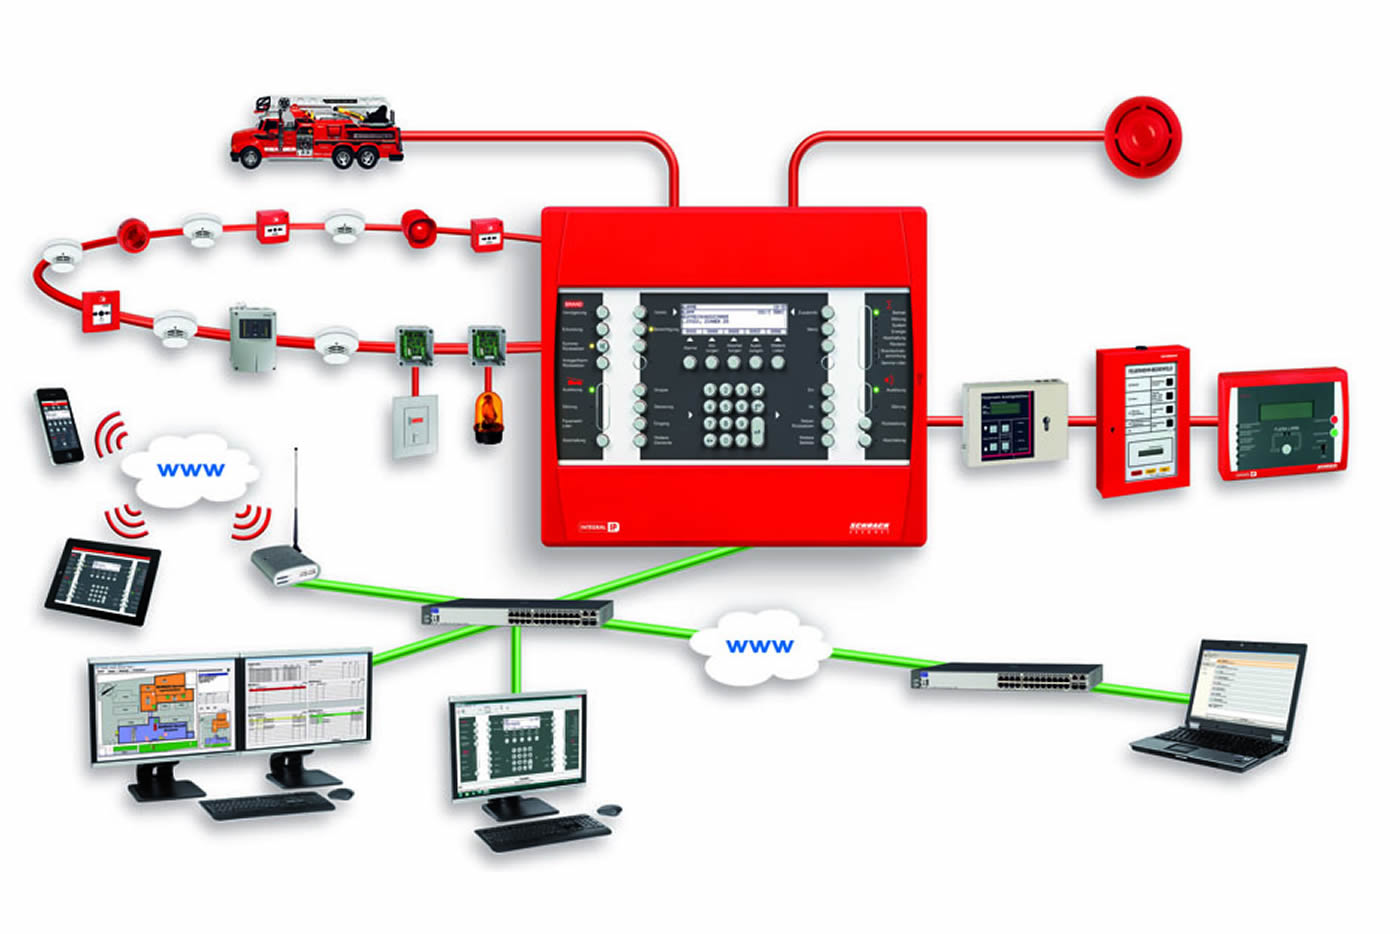 UL , EN and VDS approved Fire Alarm Panels by Schrack